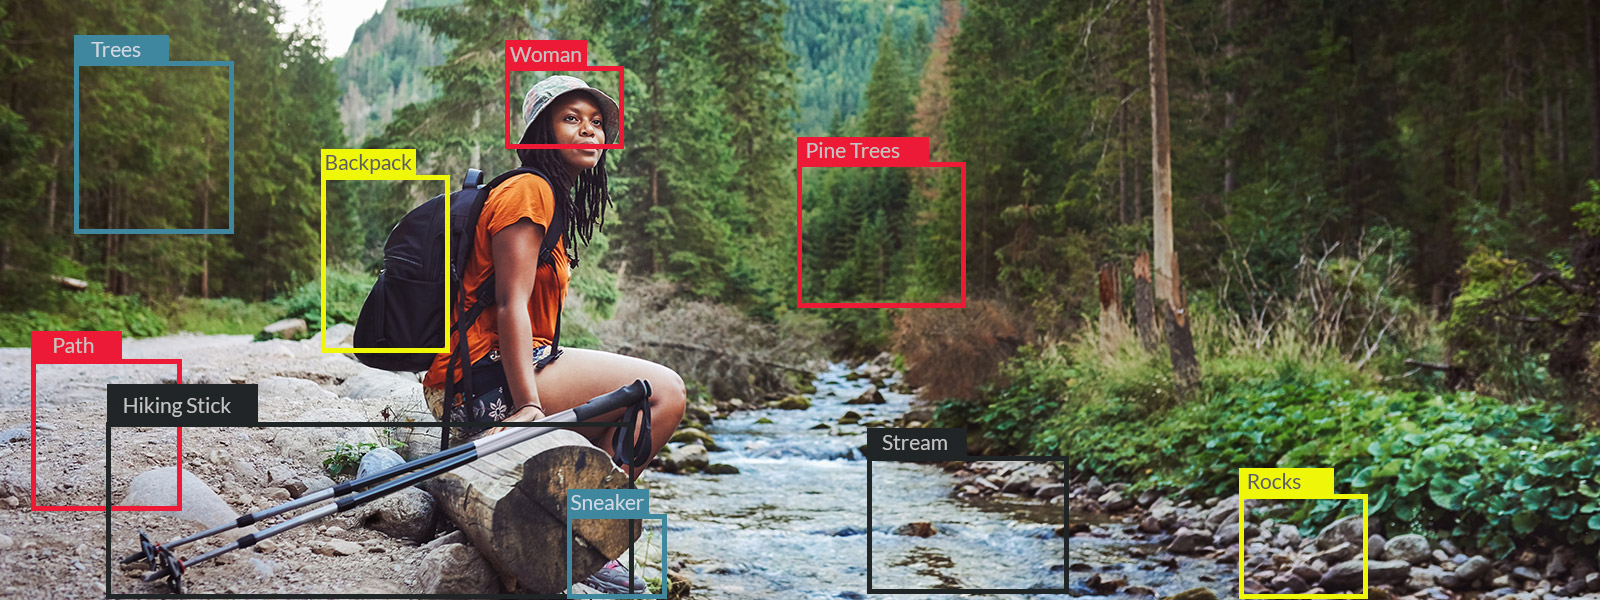 Image Recognition Accuracy Study - Featured Image